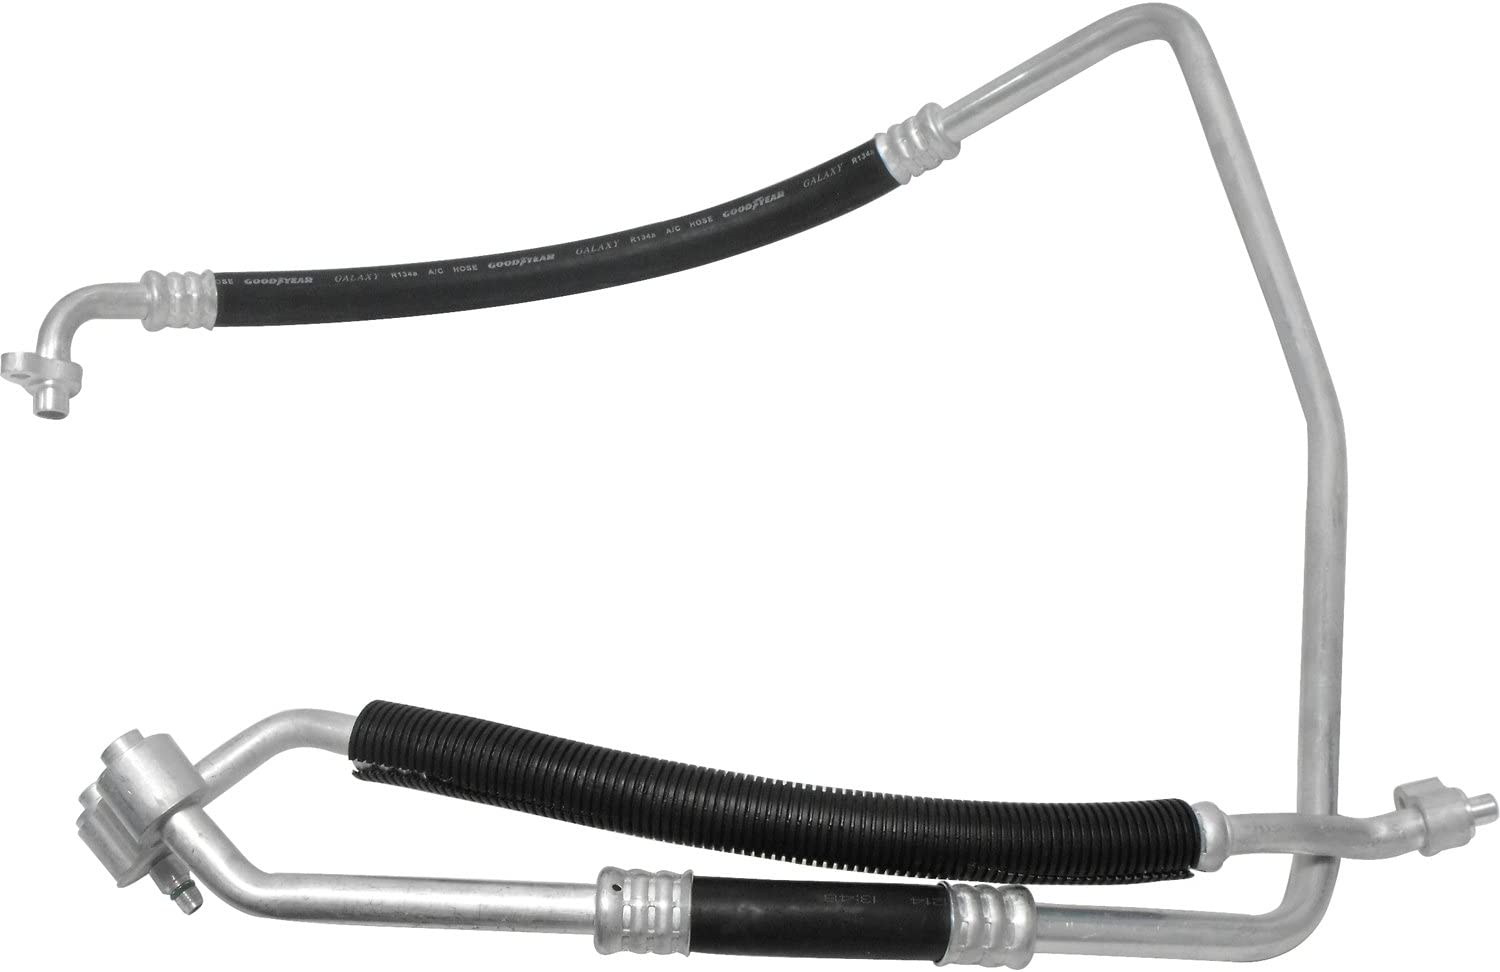 A//C Manifold Hose Assembly-Suction and Discharge Assembly UAC HA 11387C